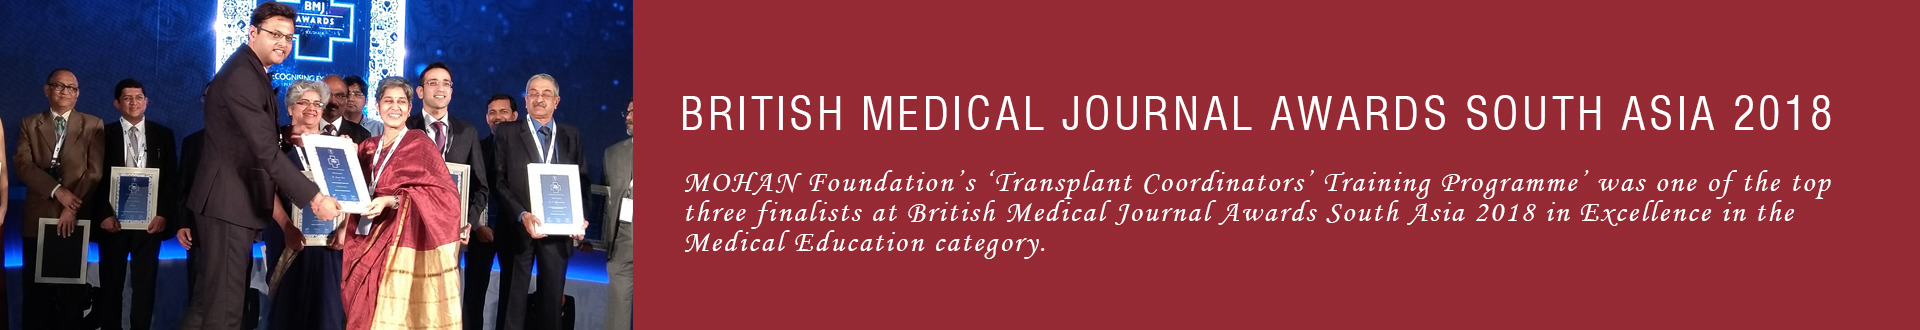 British Medical Journal Awards South Asia 2018